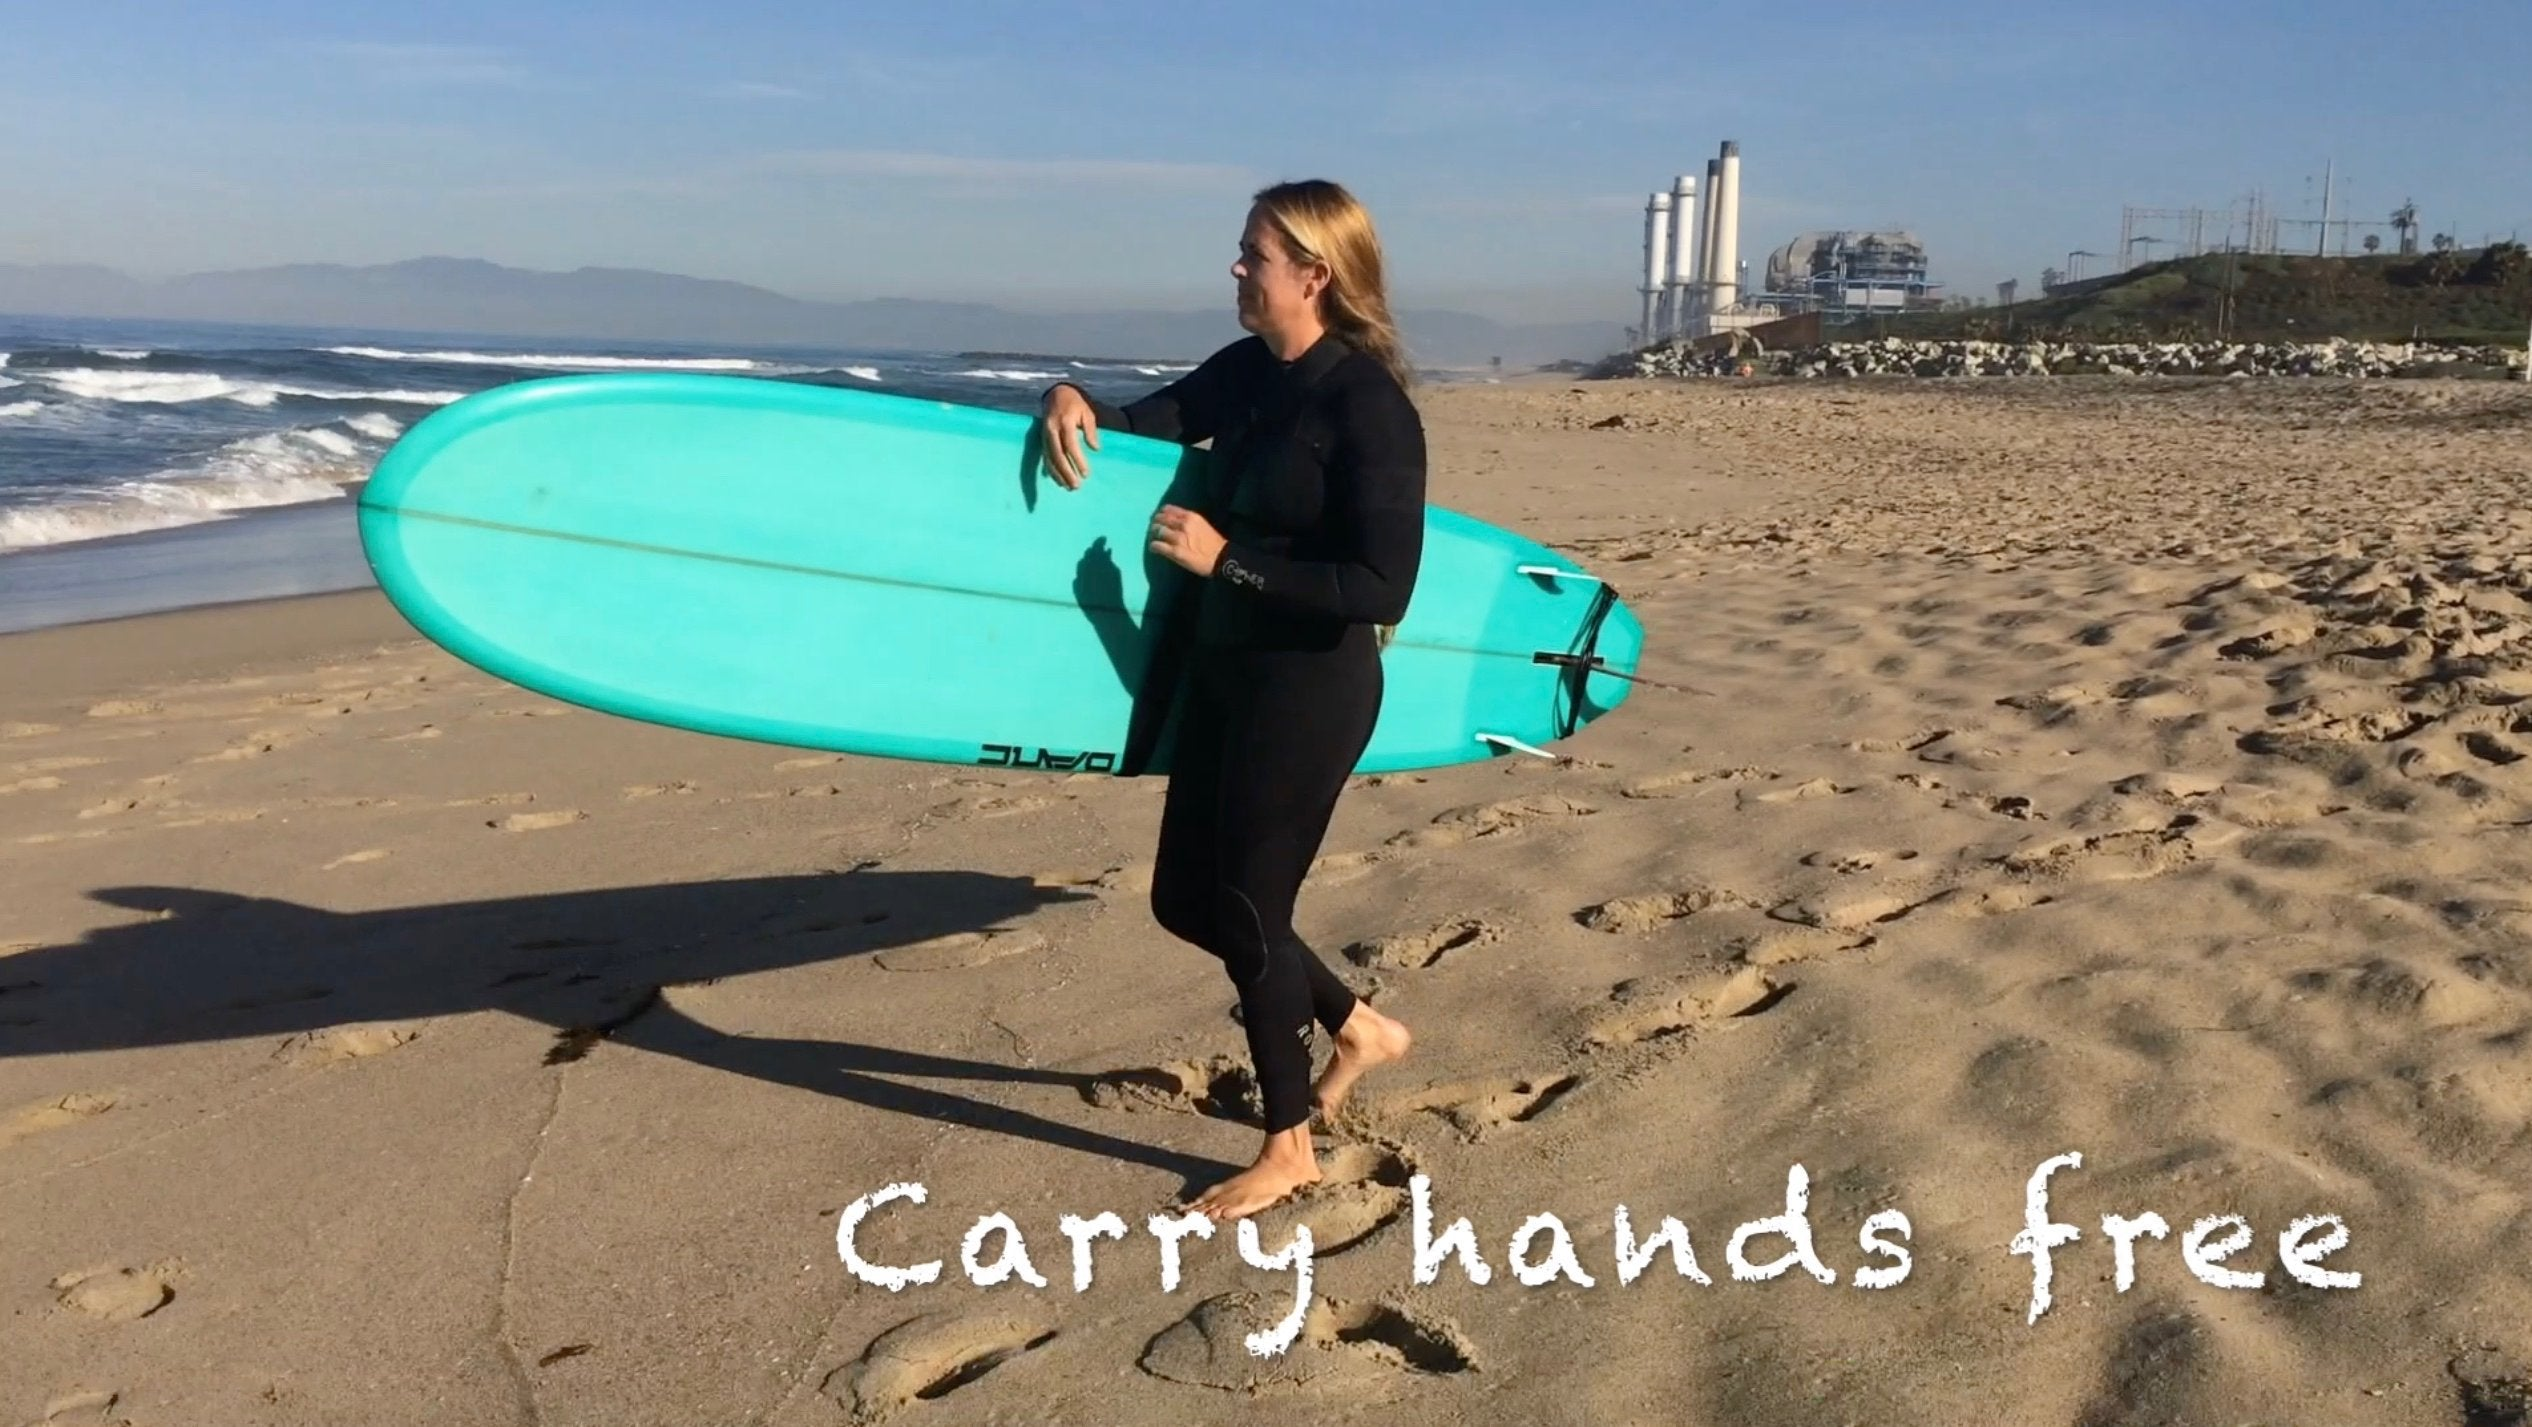 McSling4Surf is a hands free surfboard carry strap, surfboard carrier